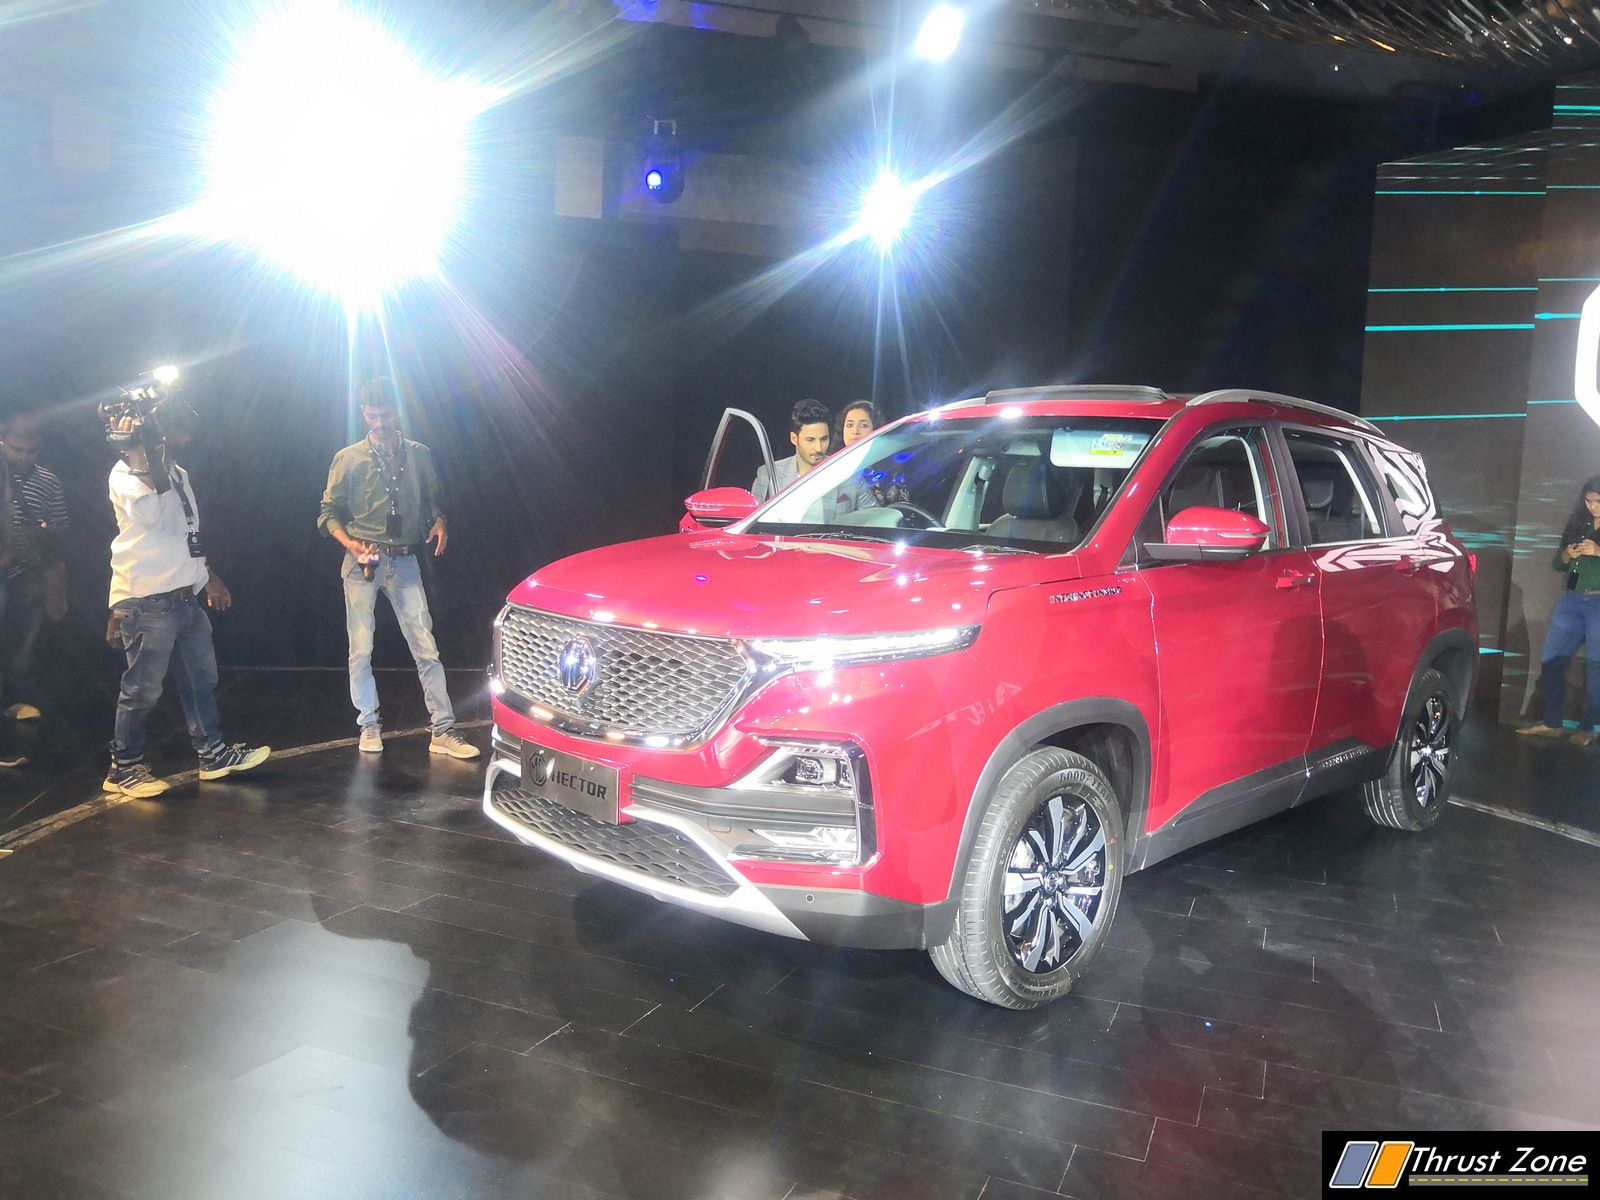 https://www.thrustzone.com/wp-content/uploads/2019/05/MG-Hector-India-Launch-7.jpg